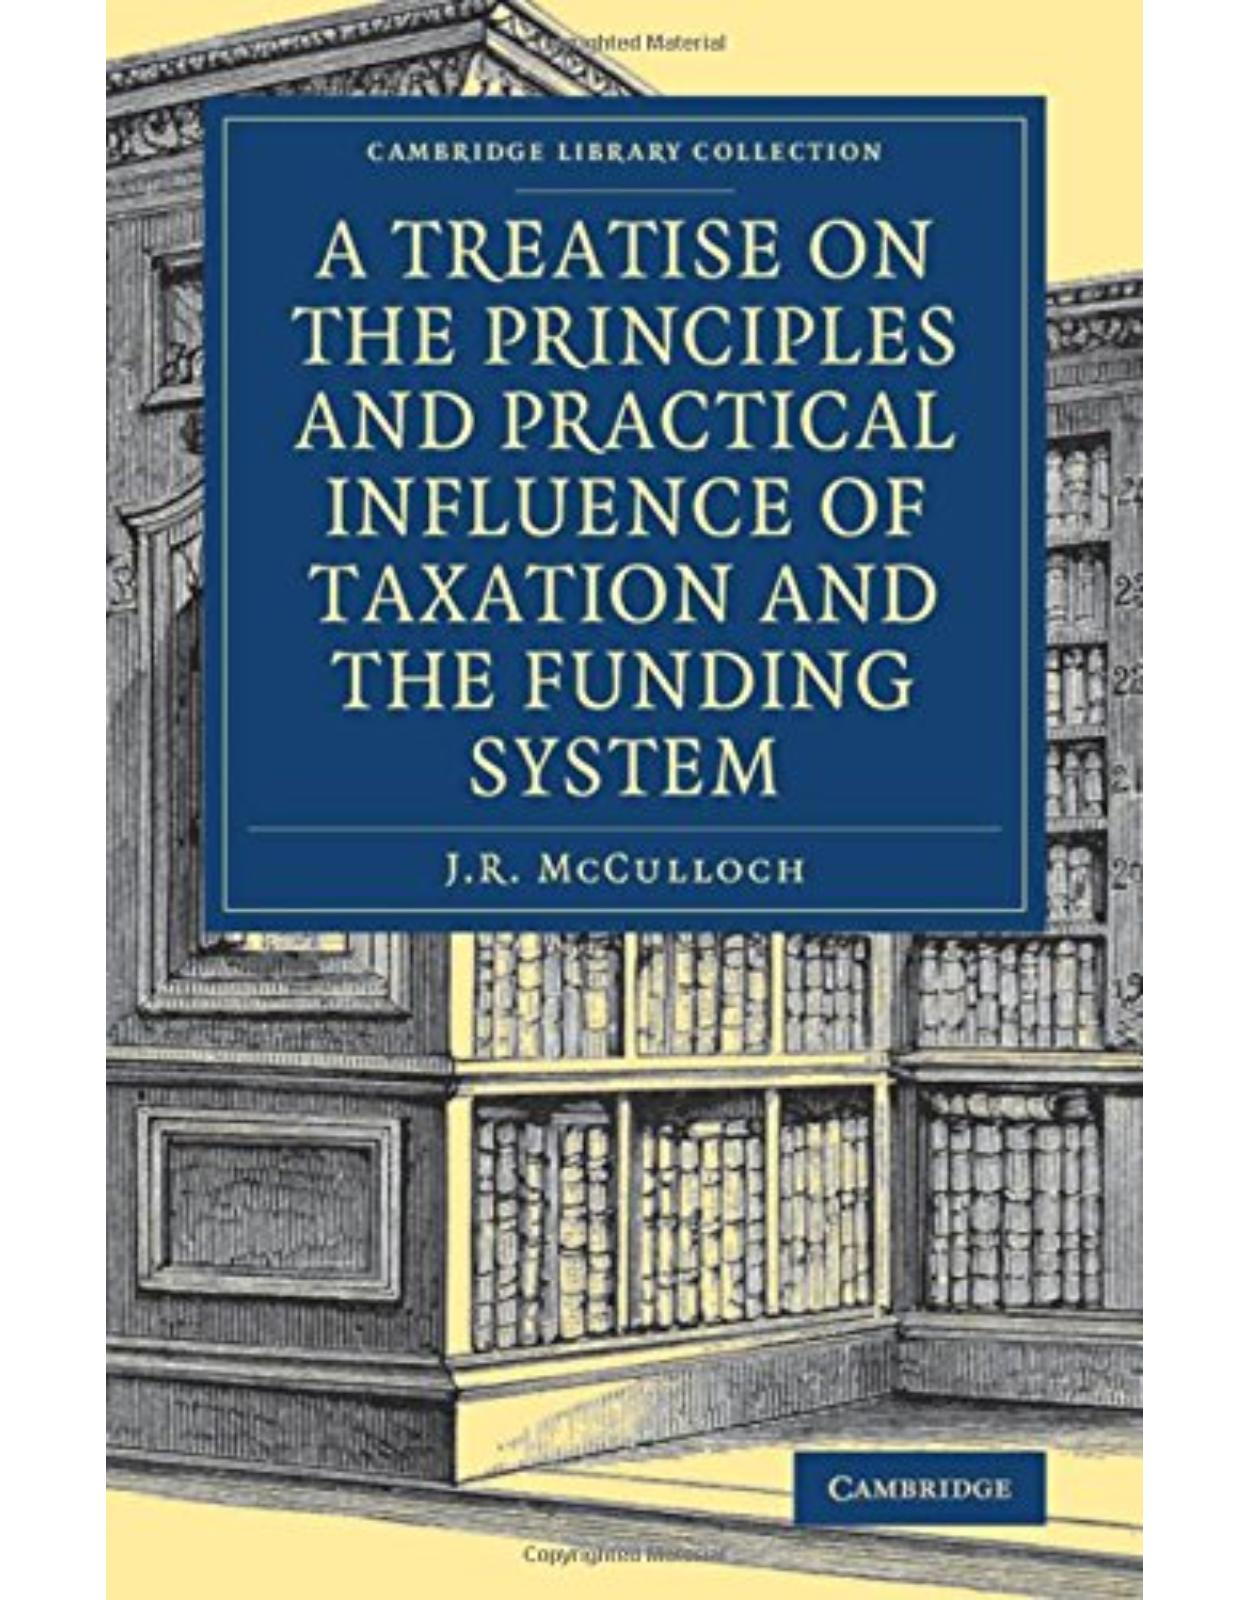 A Treatise on the Principles and Practical Influence of Taxation and the Funding System (Cambridge Library Collection - British and Irish History, 19th Century)